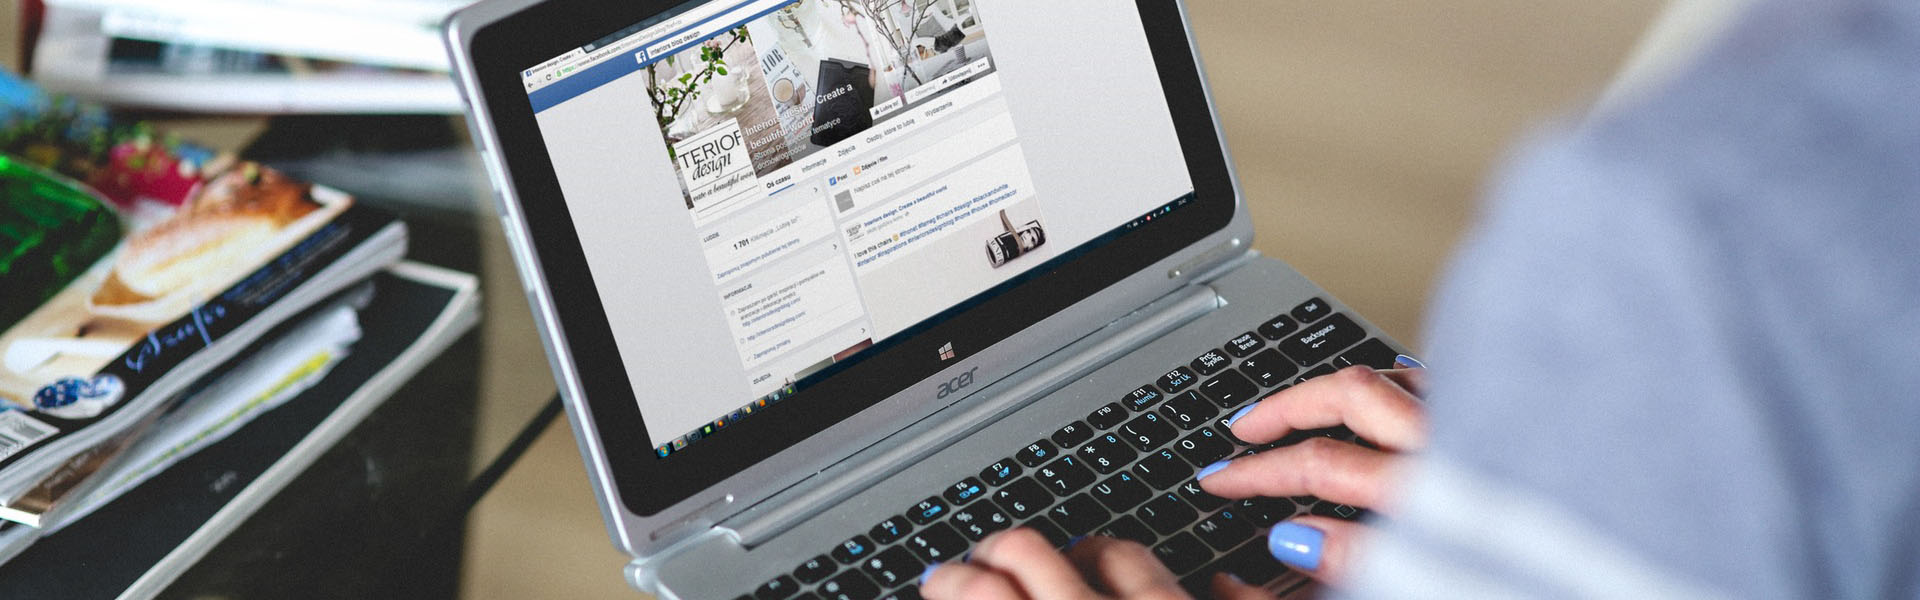 Combine Content Marketing and Social Media To Ignite Lead Generation